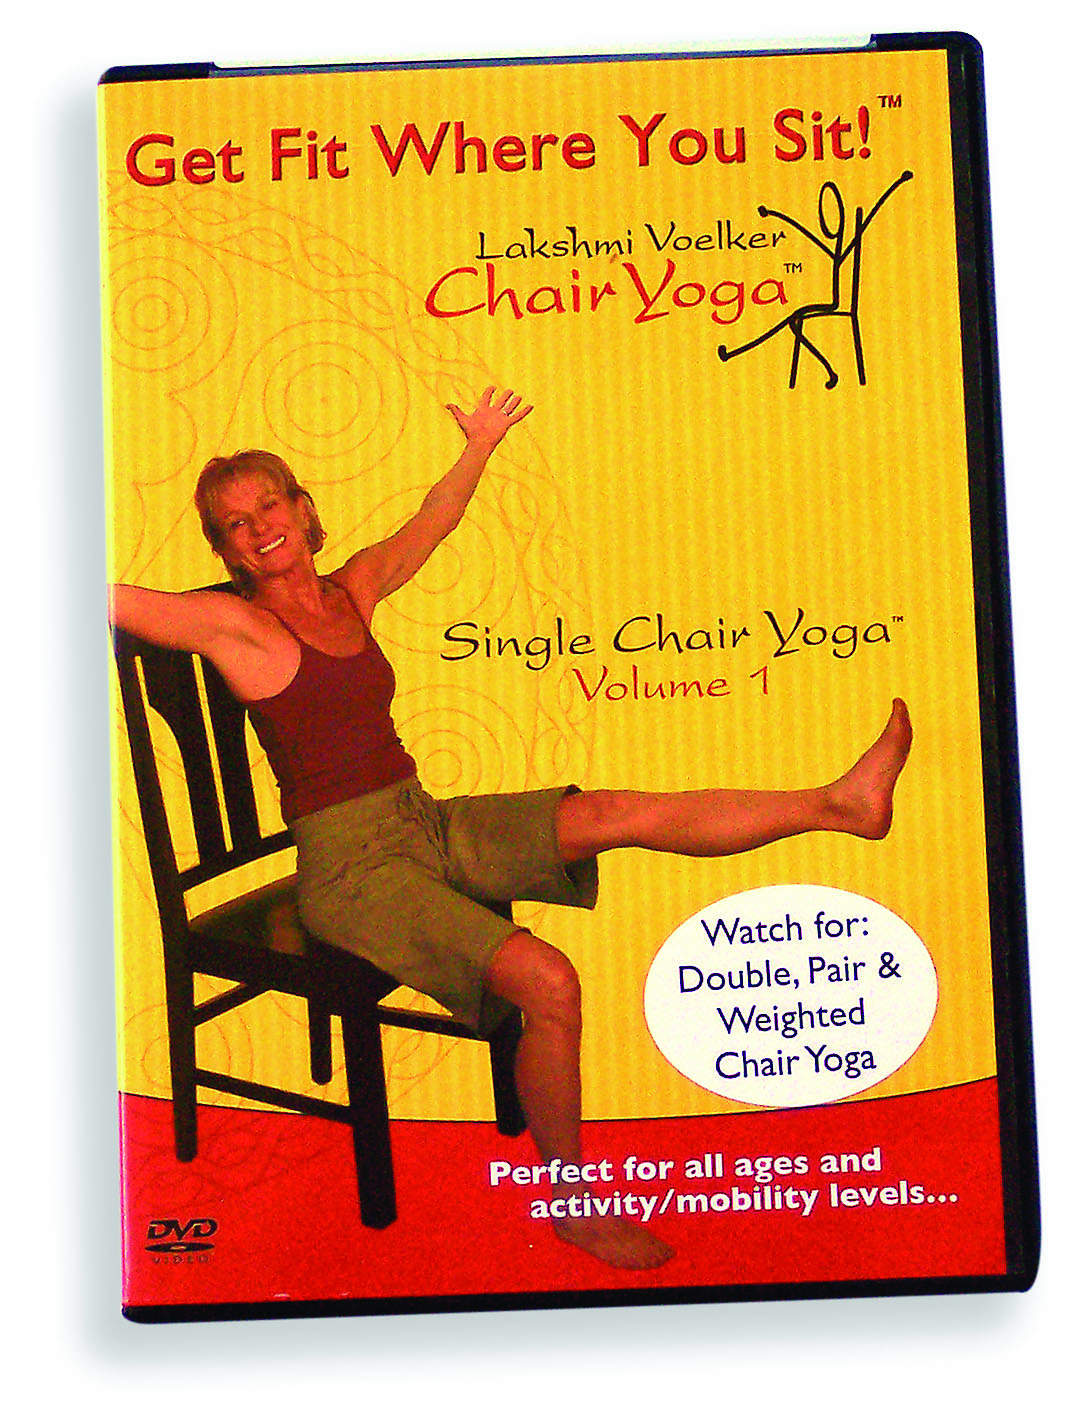 Lakshmi Voelker will Conduct a Chair Yoga Teacher Training